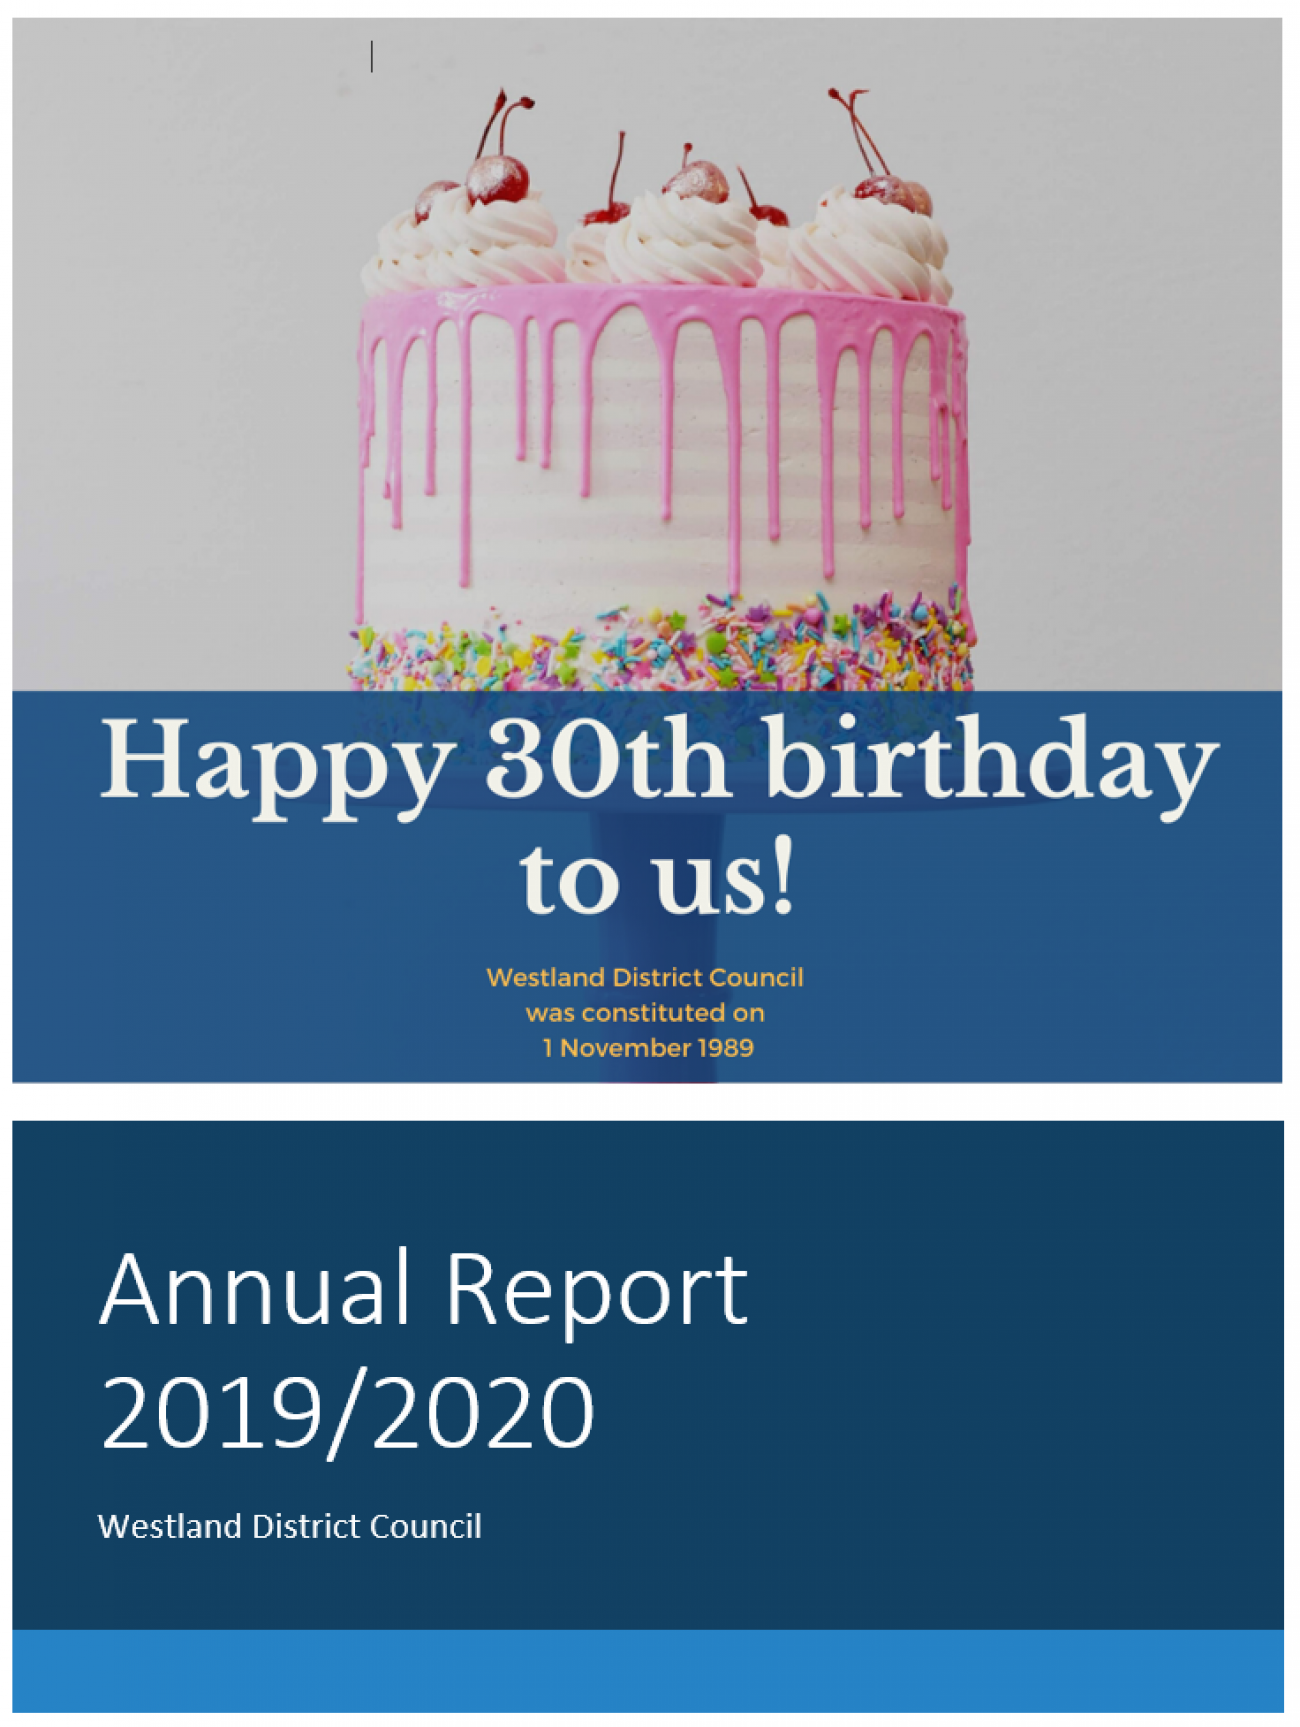 Annual Report 2019/2020 Adopted